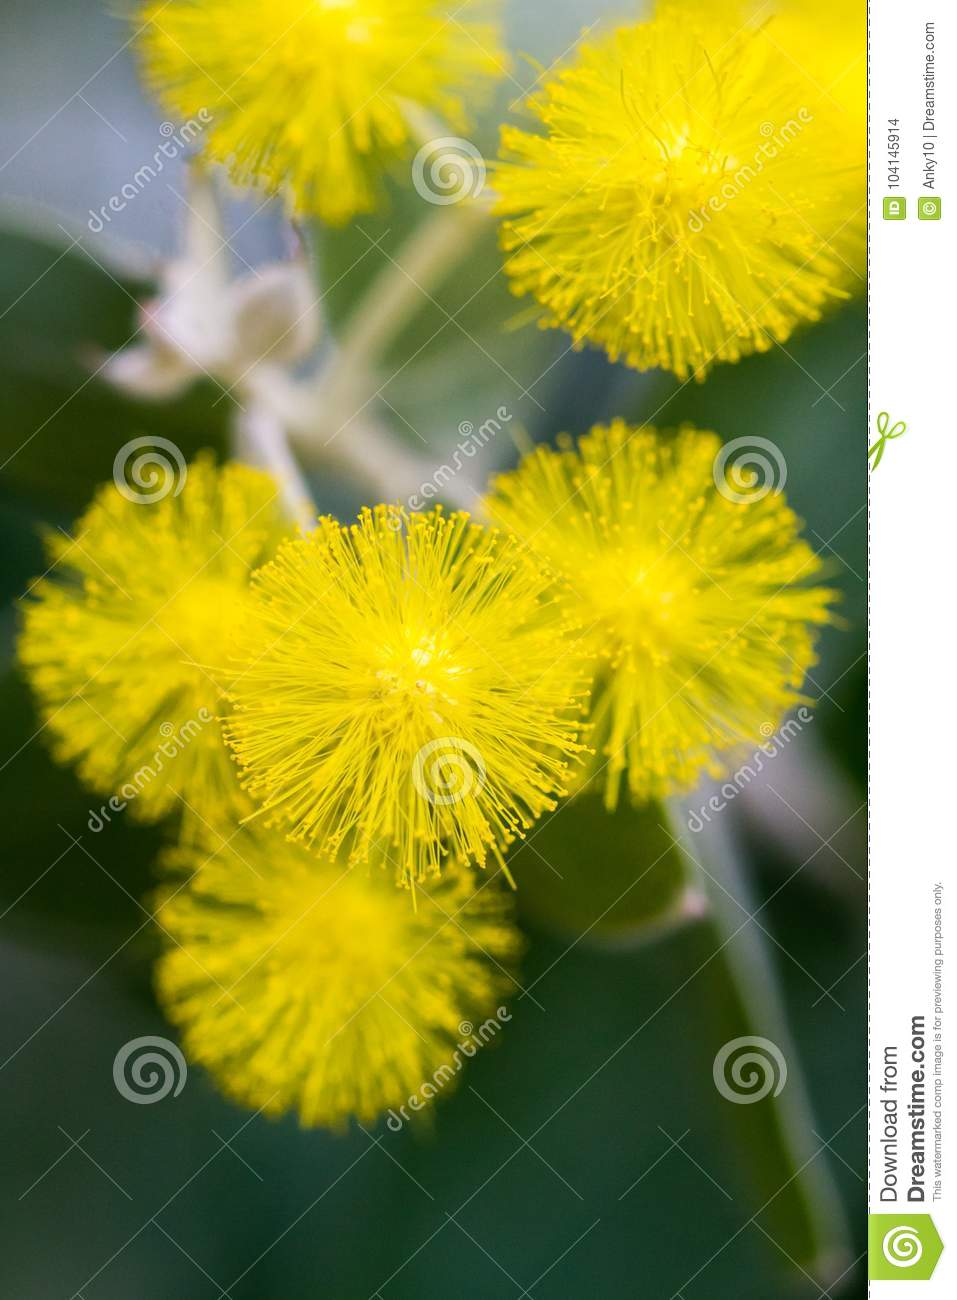 Yellow Ball Flowers Indoors Over Dark Background Stock Photo Image